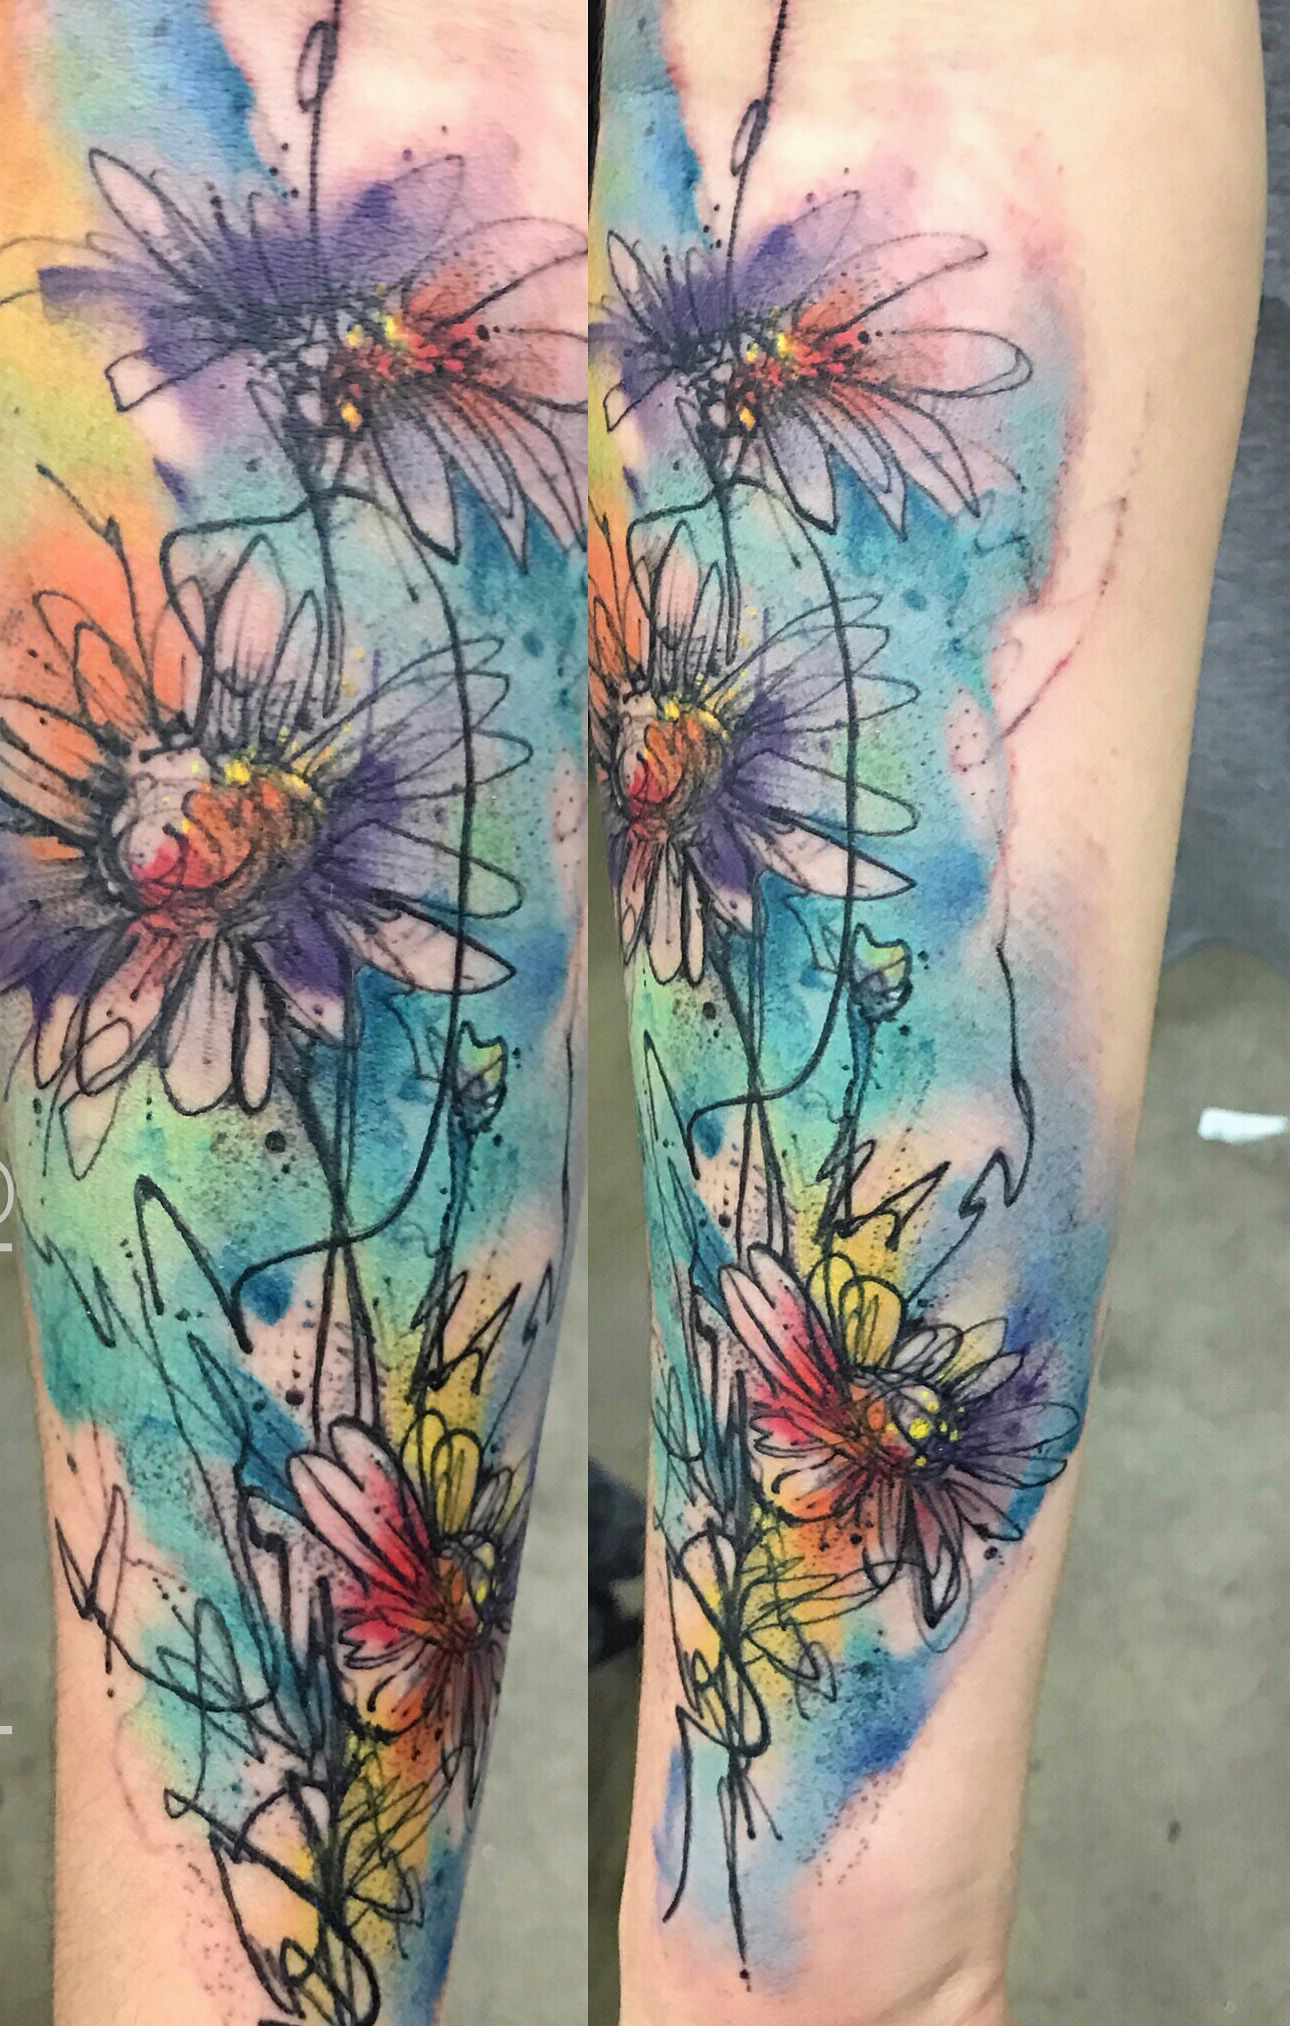 Abstract Daisy Tattoo: Watercolor Daisy Tattoo By Bryan Sanchez From Into The